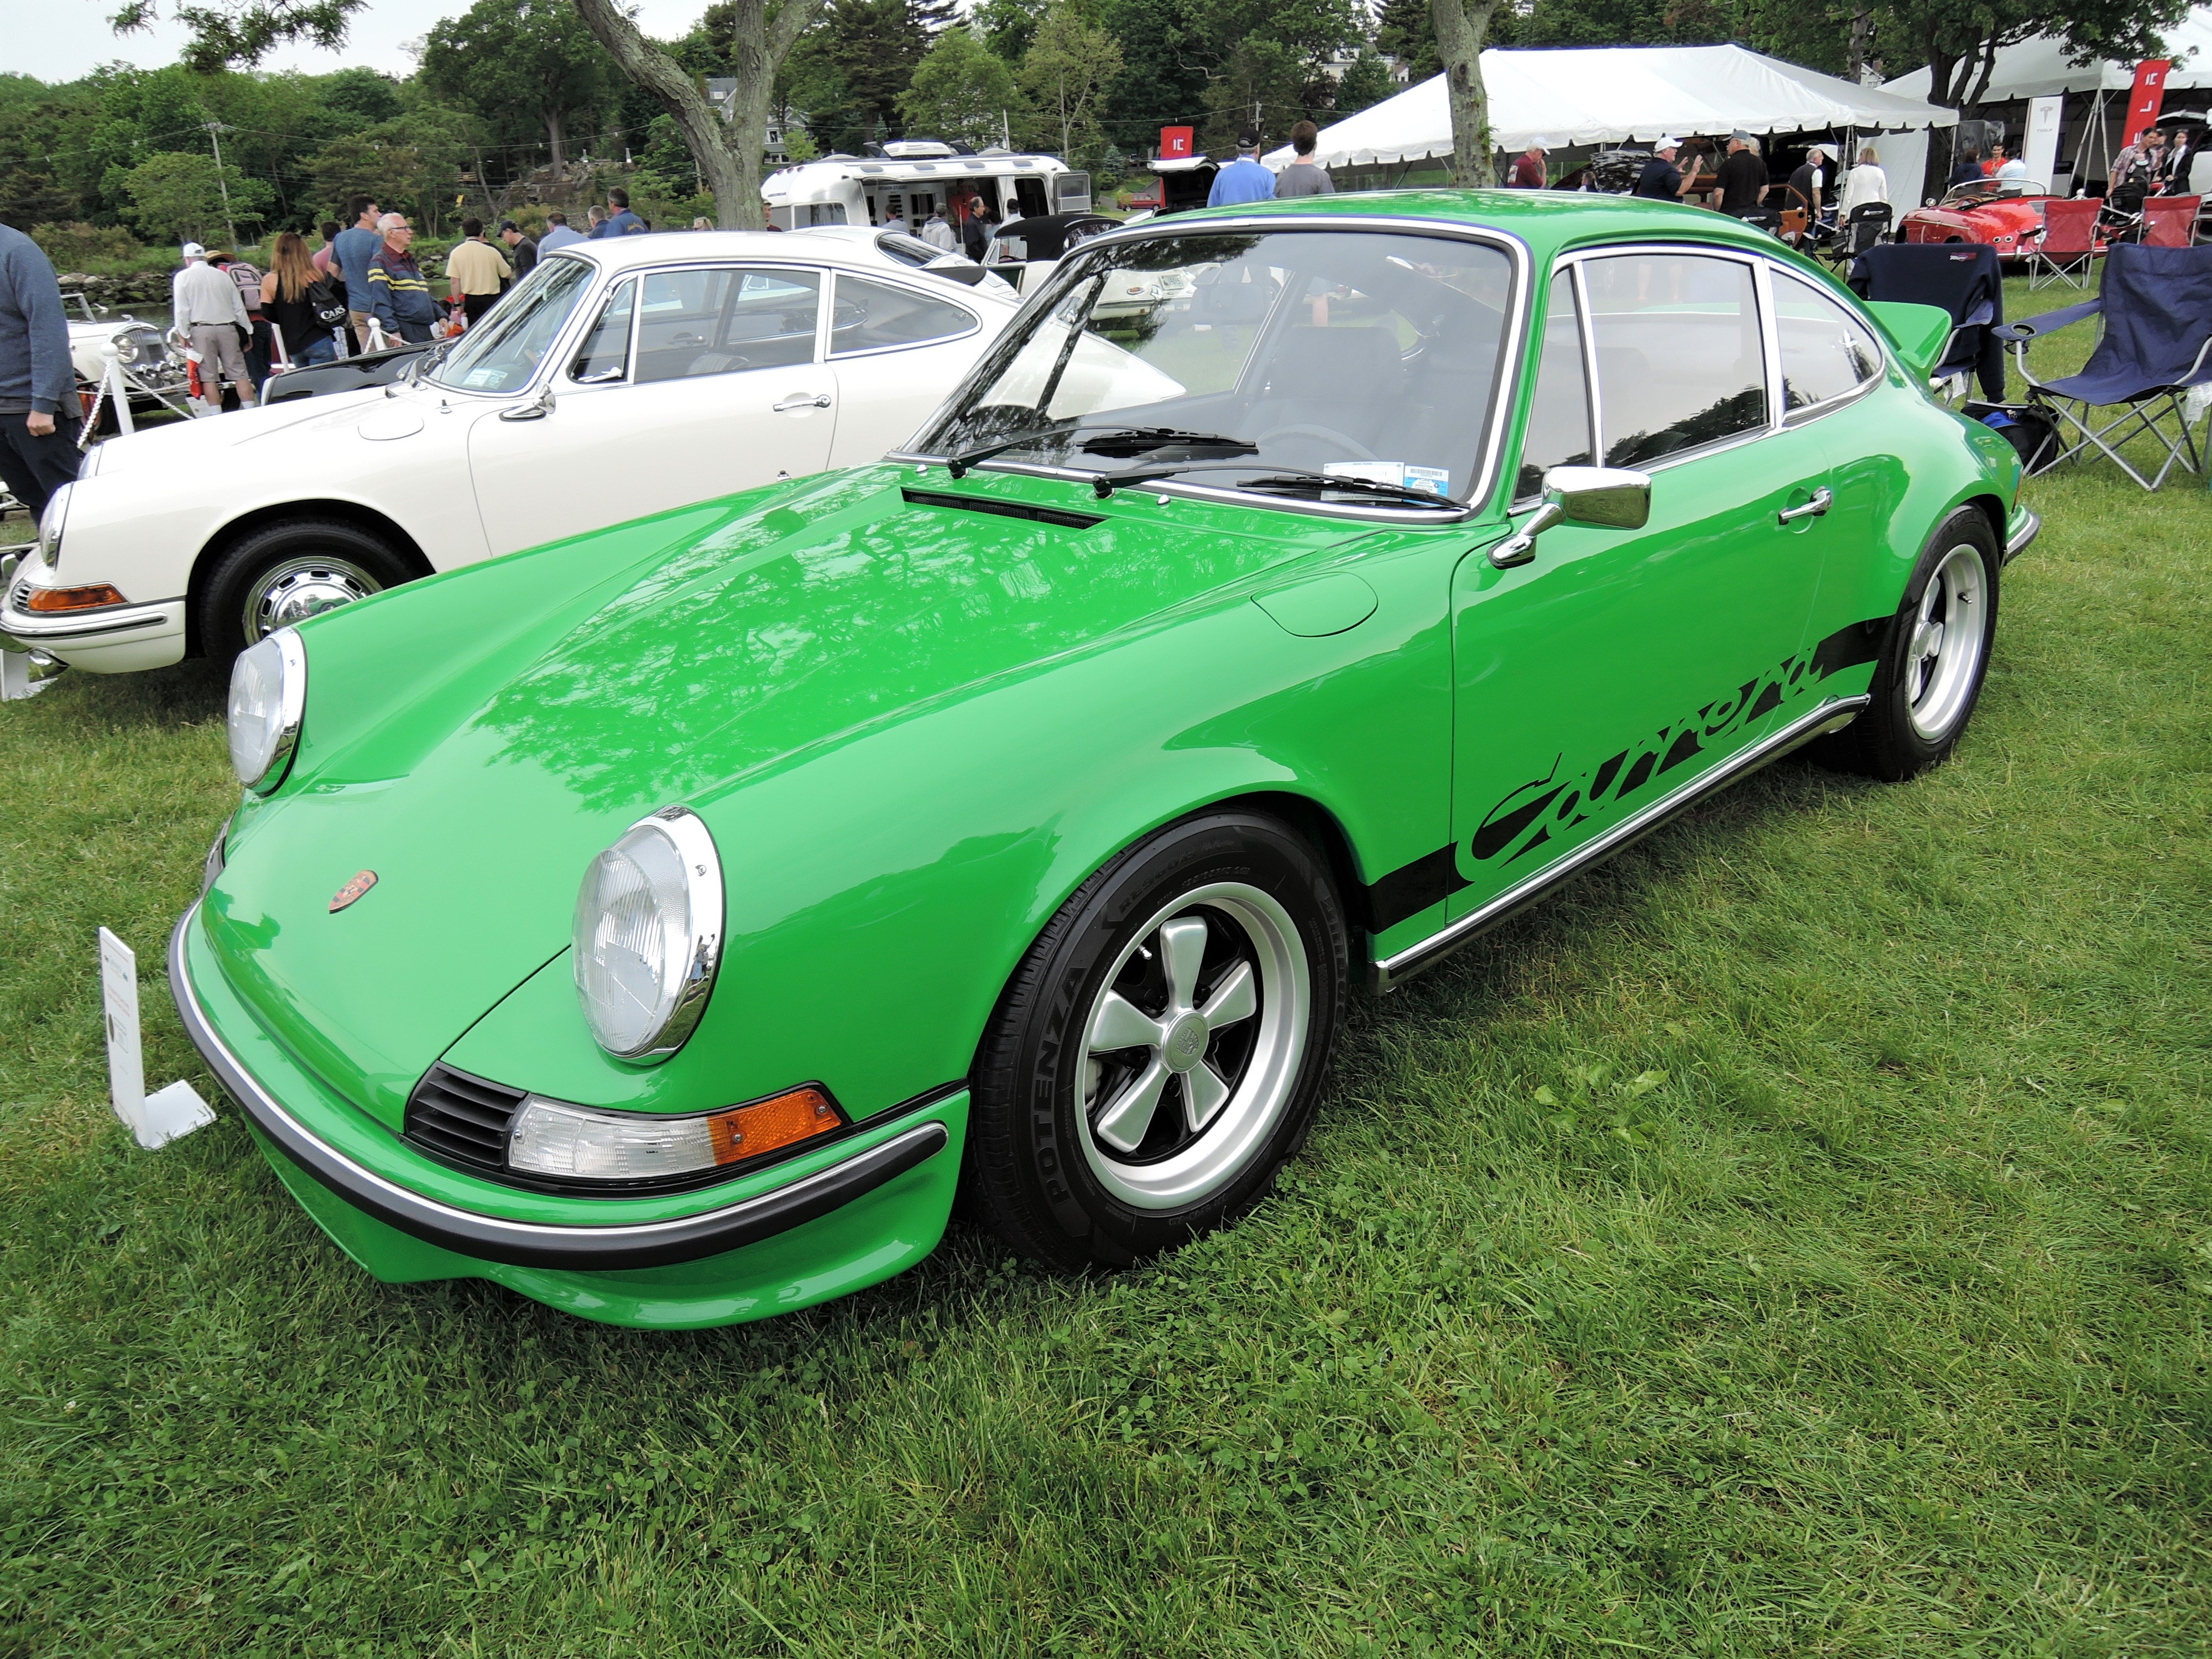 green 1973 Porsche 911 RS Carrera Touring Coupe - Greenwich Concours d'Elegance 2017